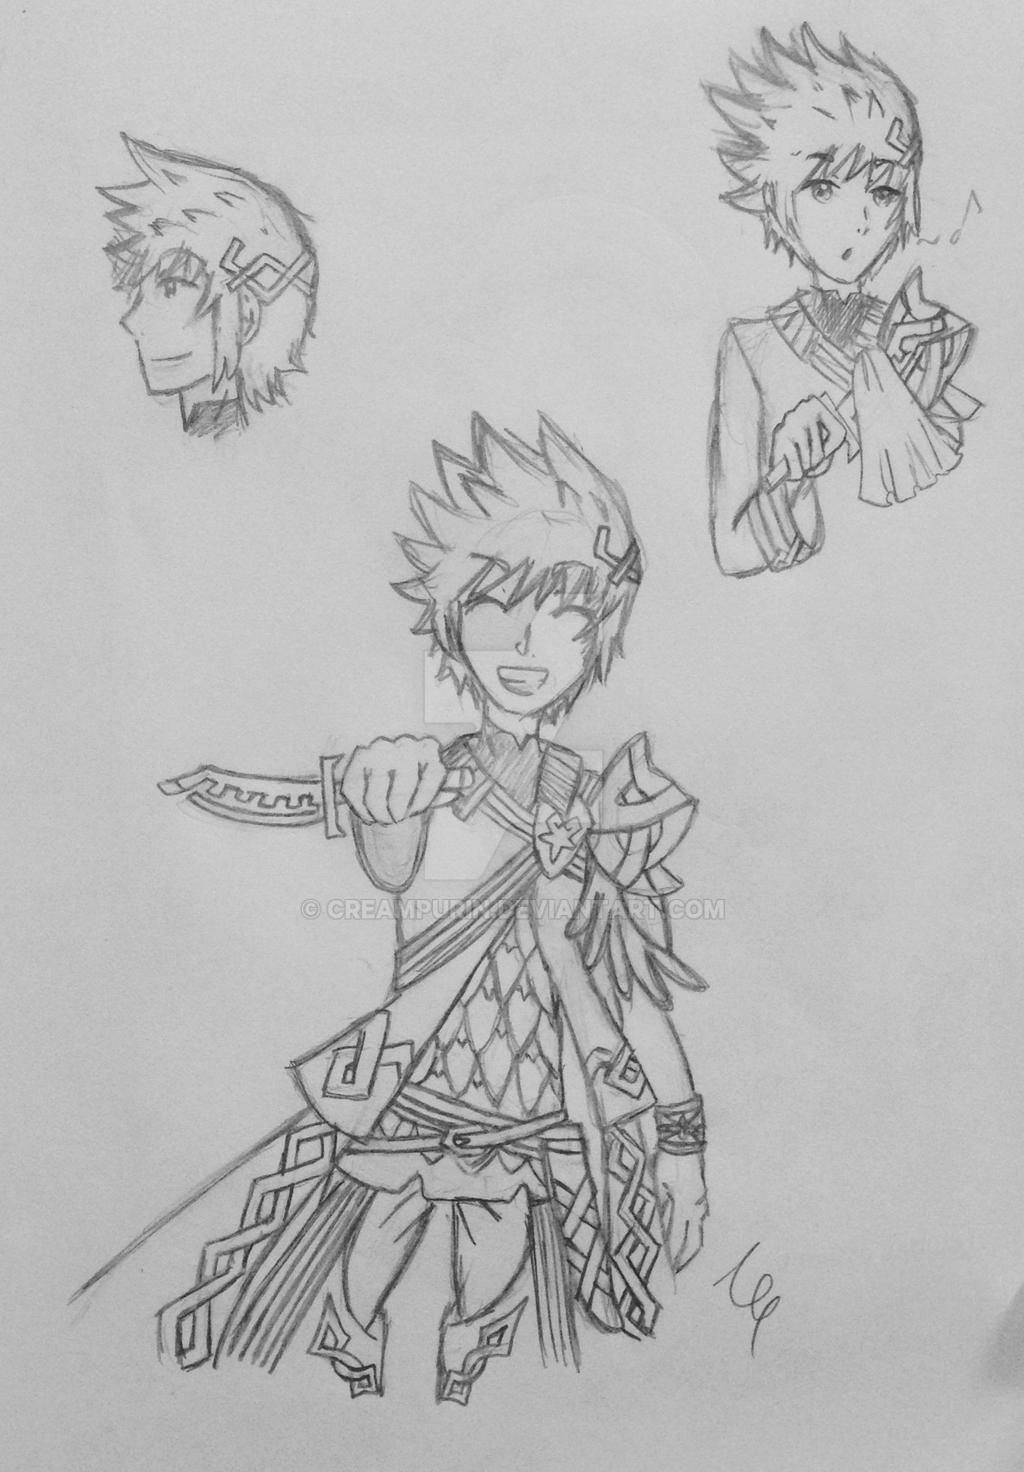 Askrian Ventus by CreamPurin